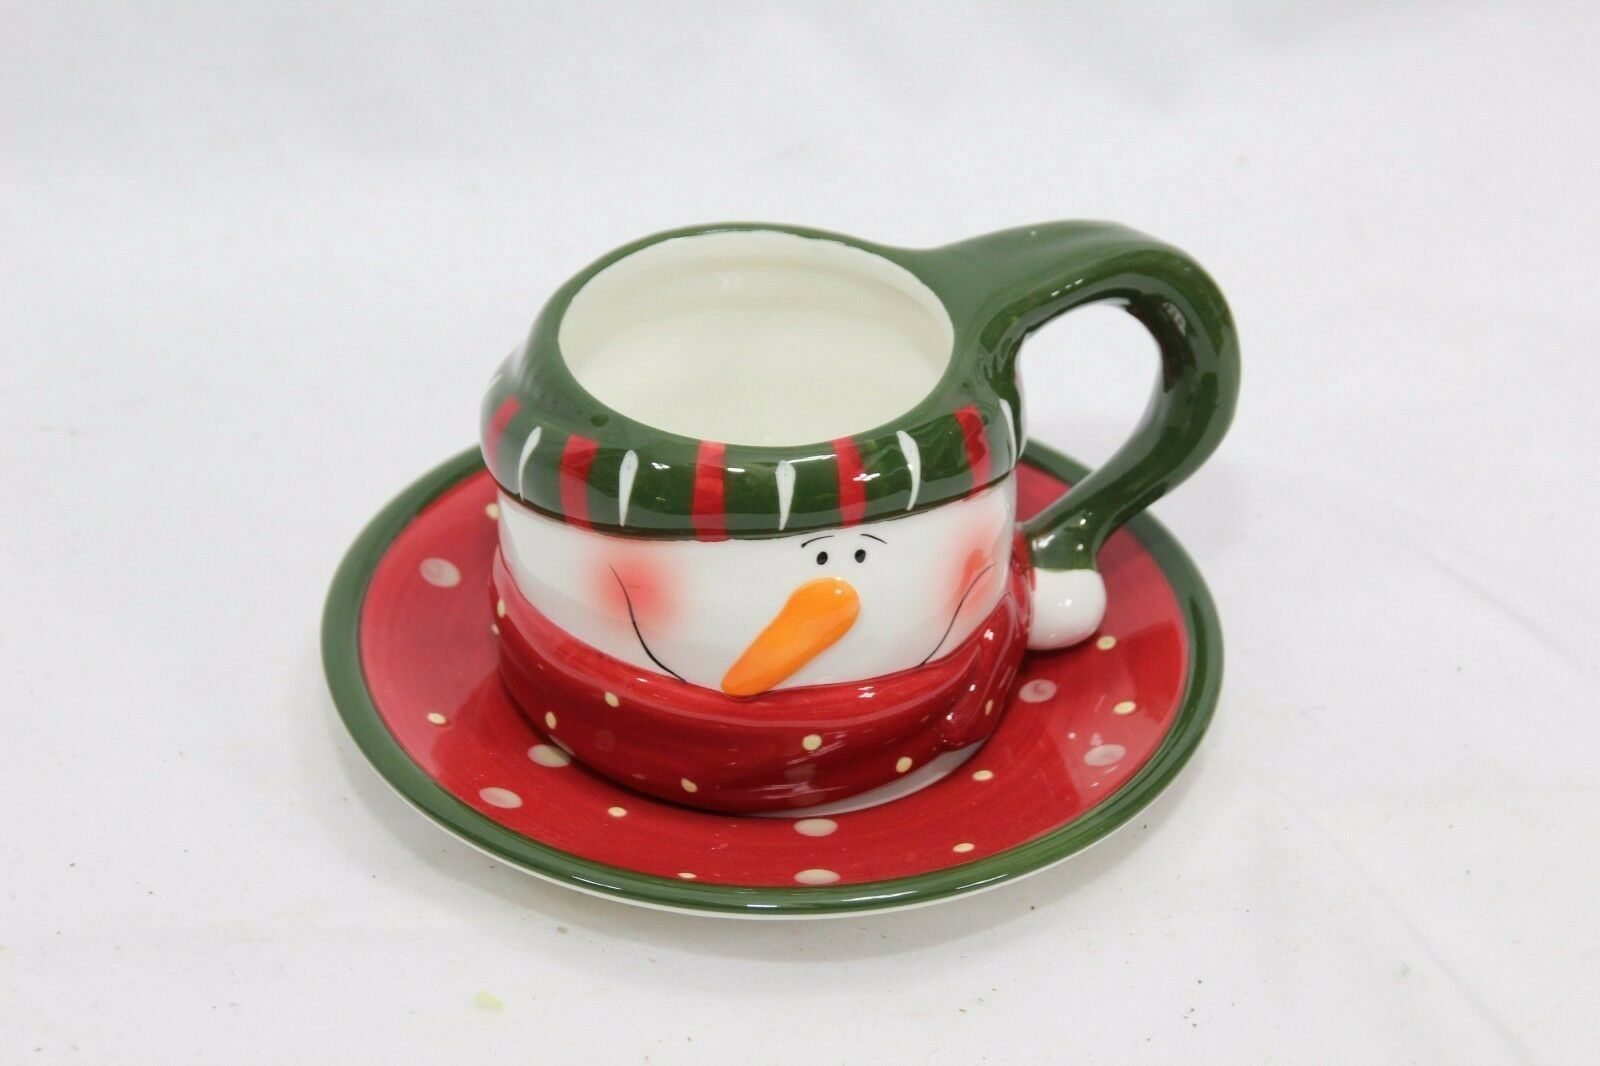 Snowman Xmas 4 Cups and 4 Saucers image 8